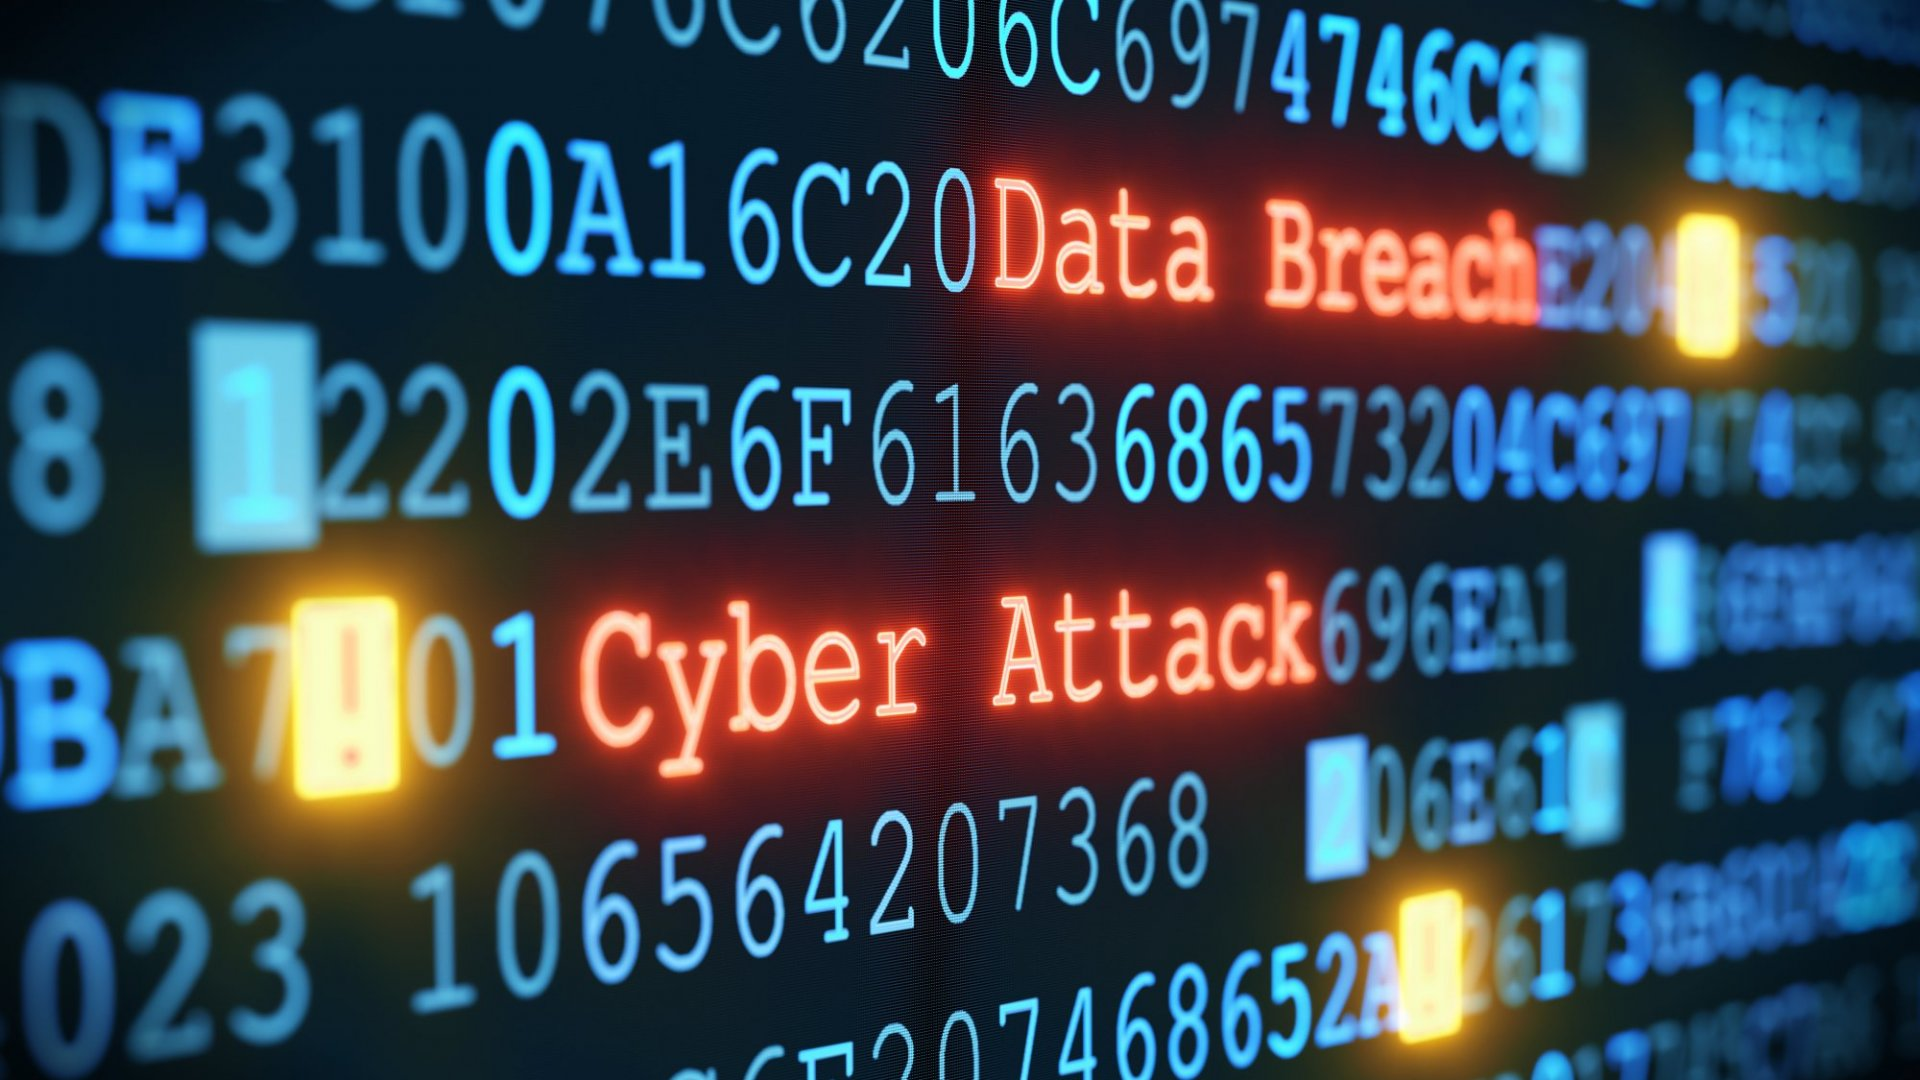 WannaCry 2.0 is latest threat to company's financial data security